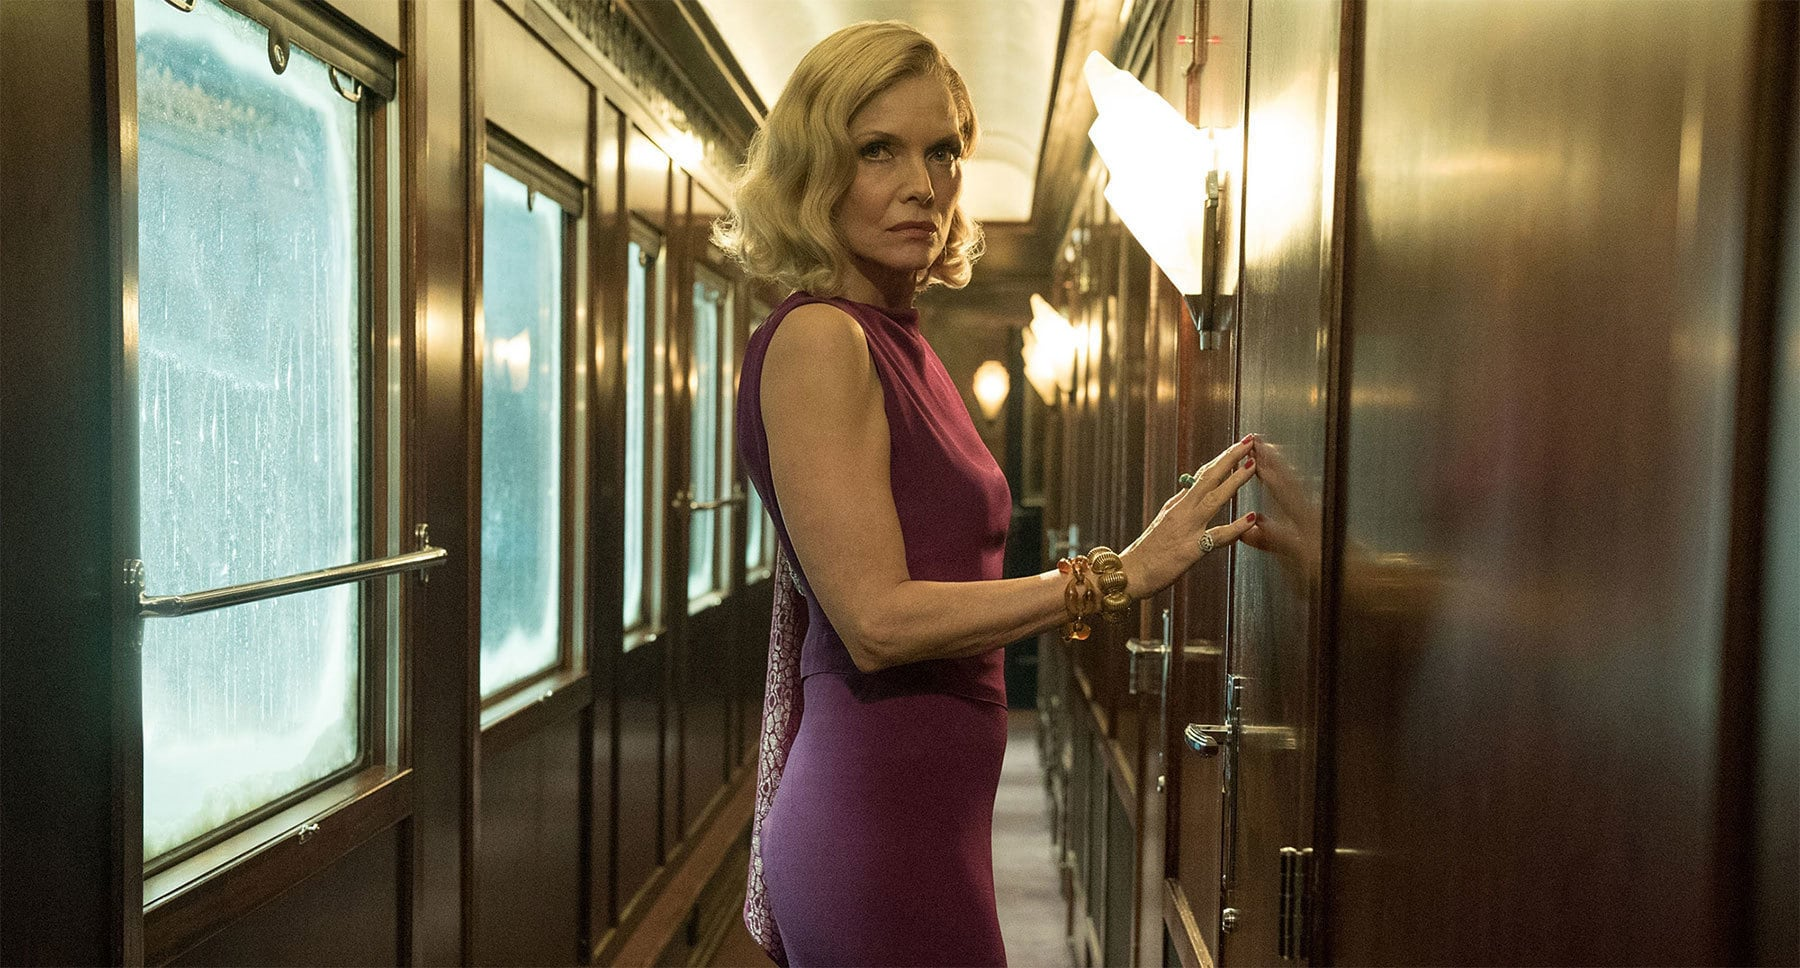 Michelle Pfeiffer (as Caroline Hubbard) standing a room on the train in Murder on the Orient Express